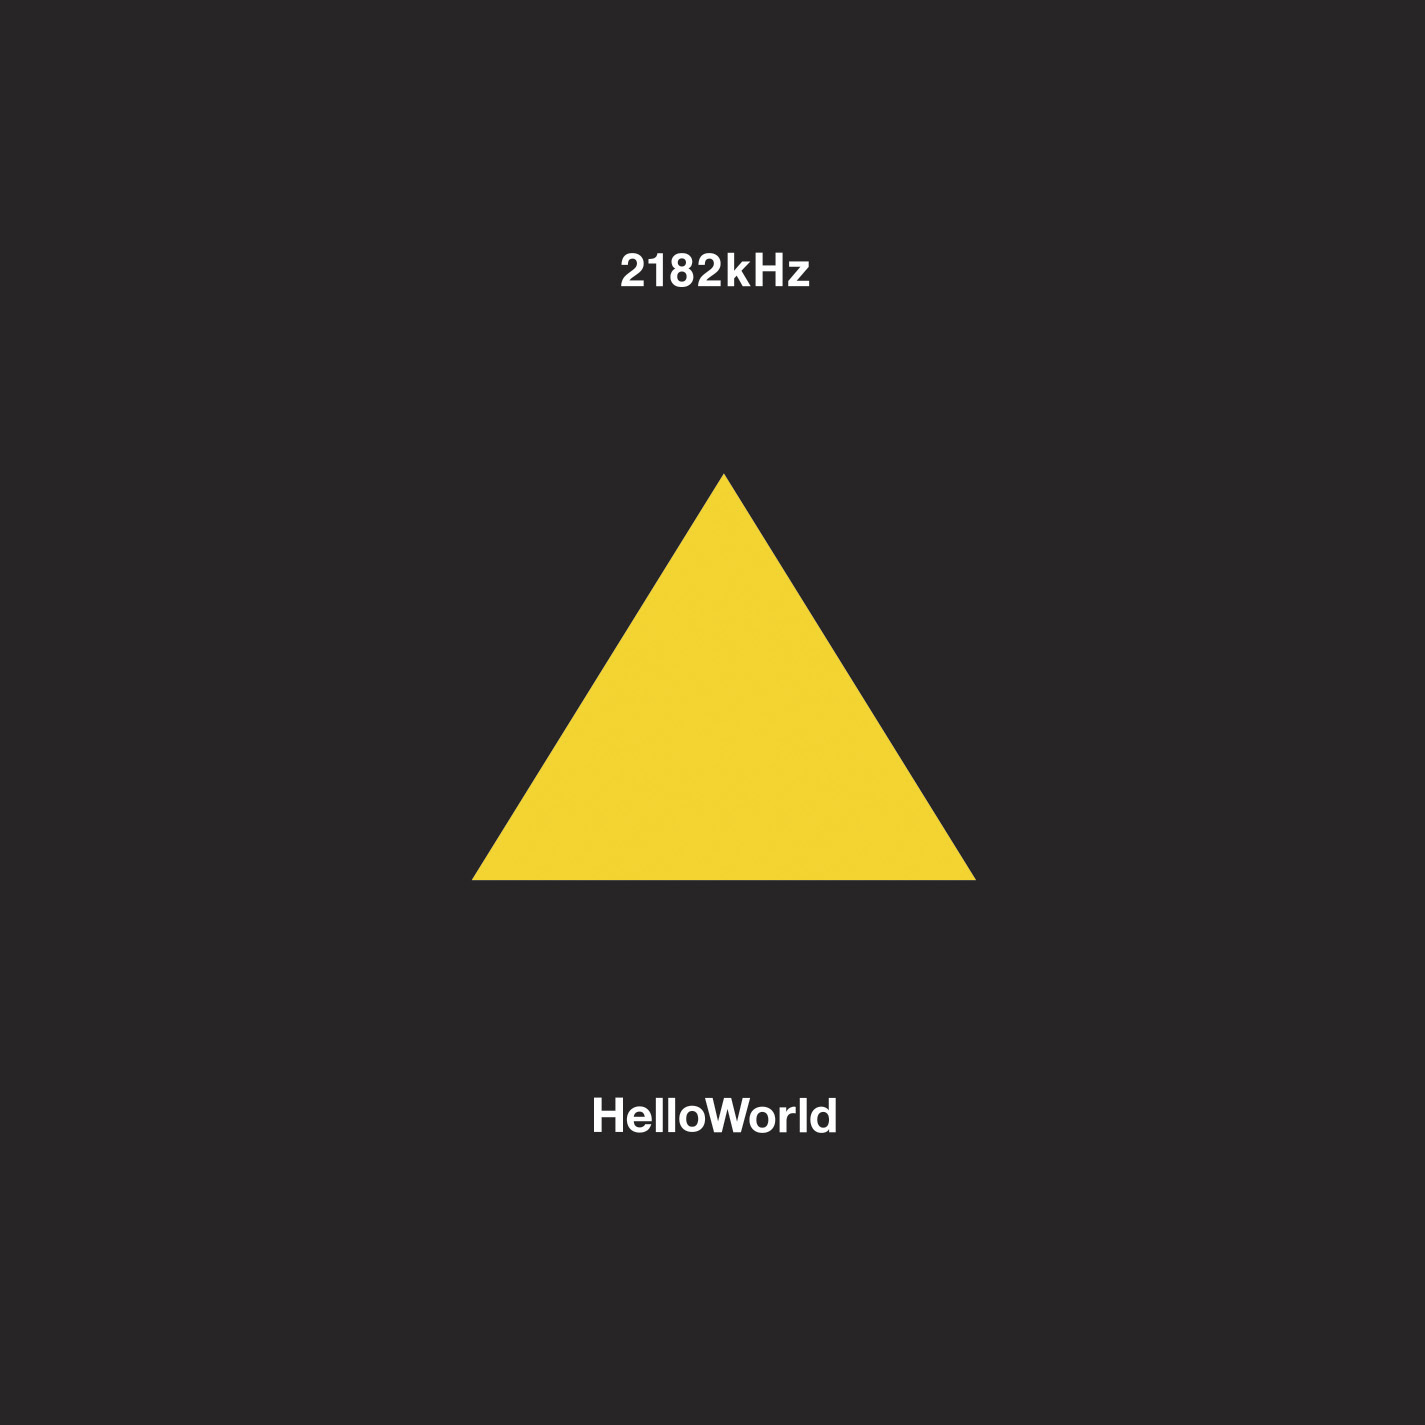 Hello World – 2182kHz (DATA064)